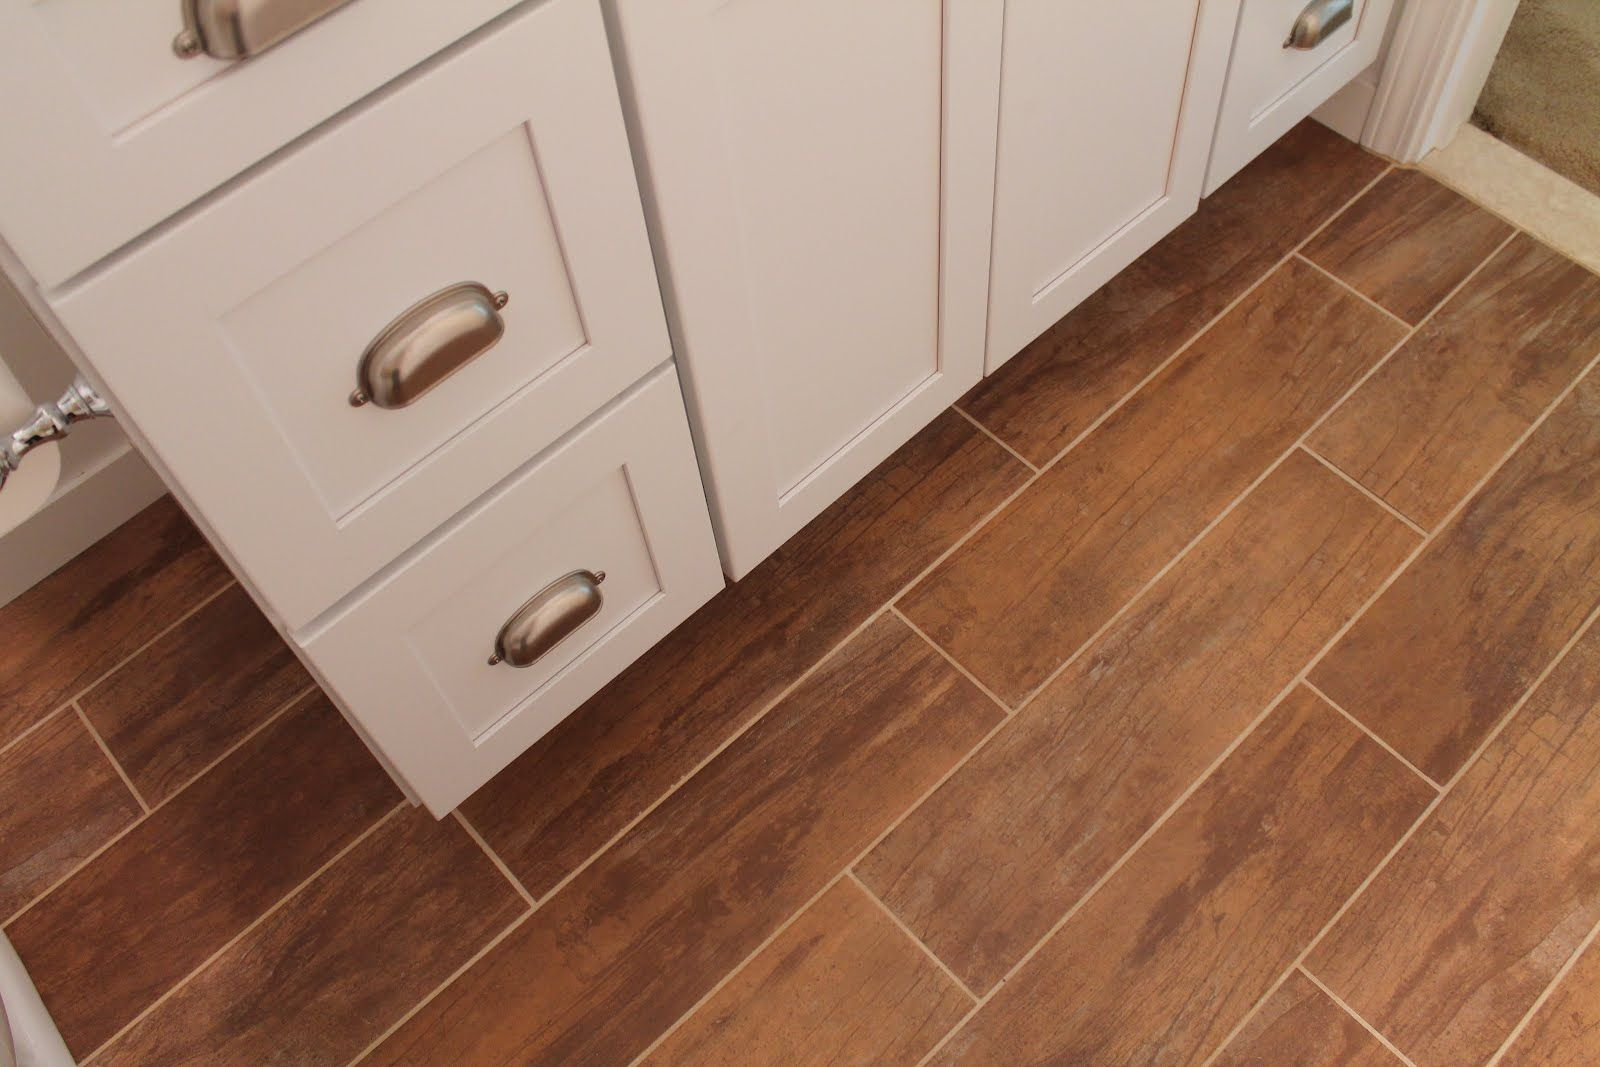 bathroom floor ideas not tile - Google Search | Bathroom | Pinterest ...